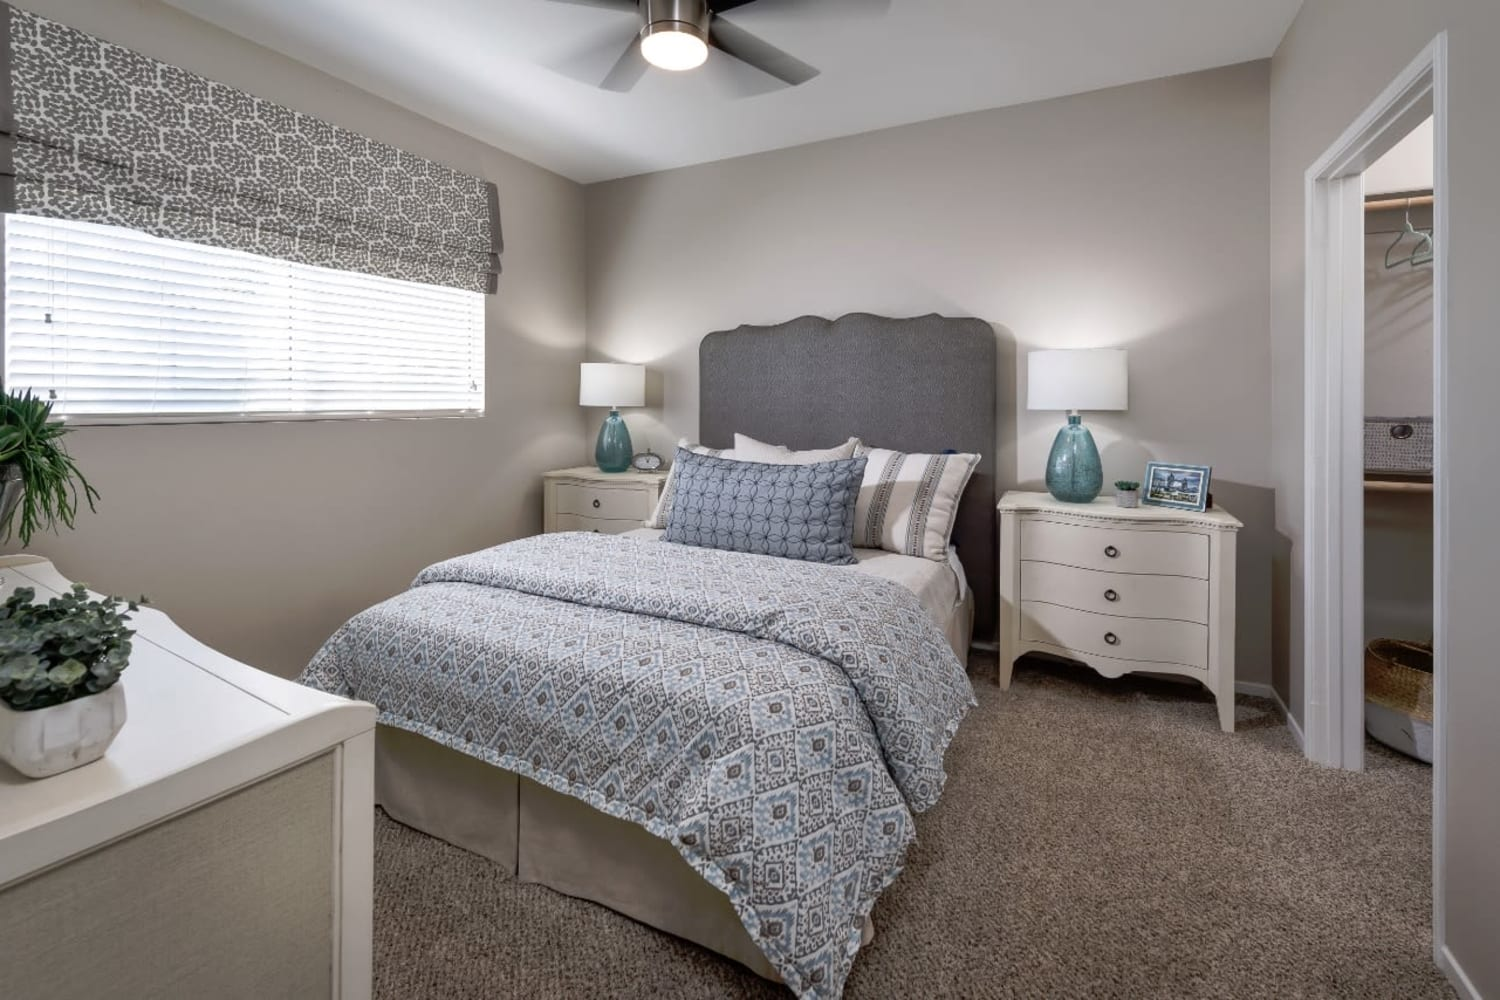 Madrid Apartments in Mission Viejo, California, offer large master bedrooms